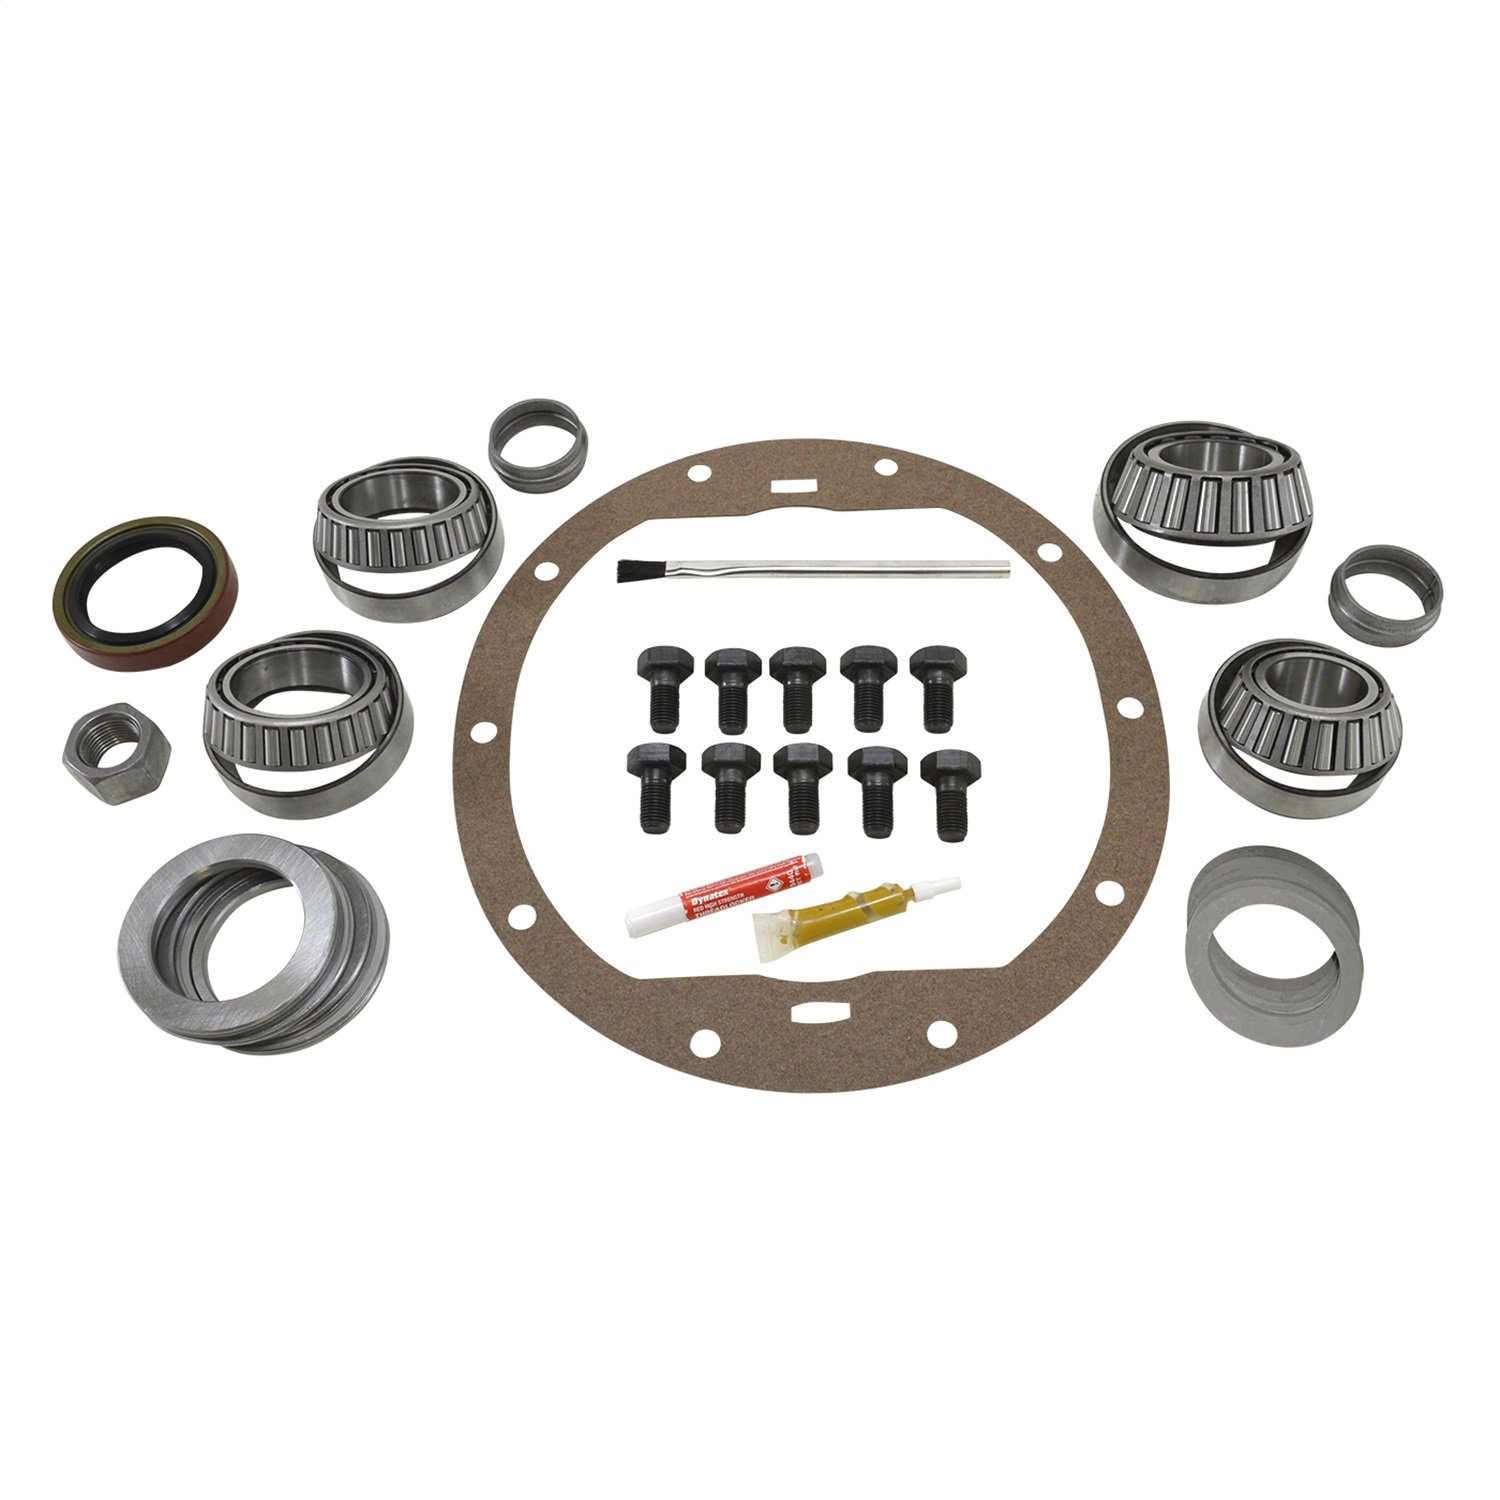 USA Standard Gear (ZK GM8.5-HD) Master Overhaul Kit for GM 8.5 Differential with HD Positraction/Locker